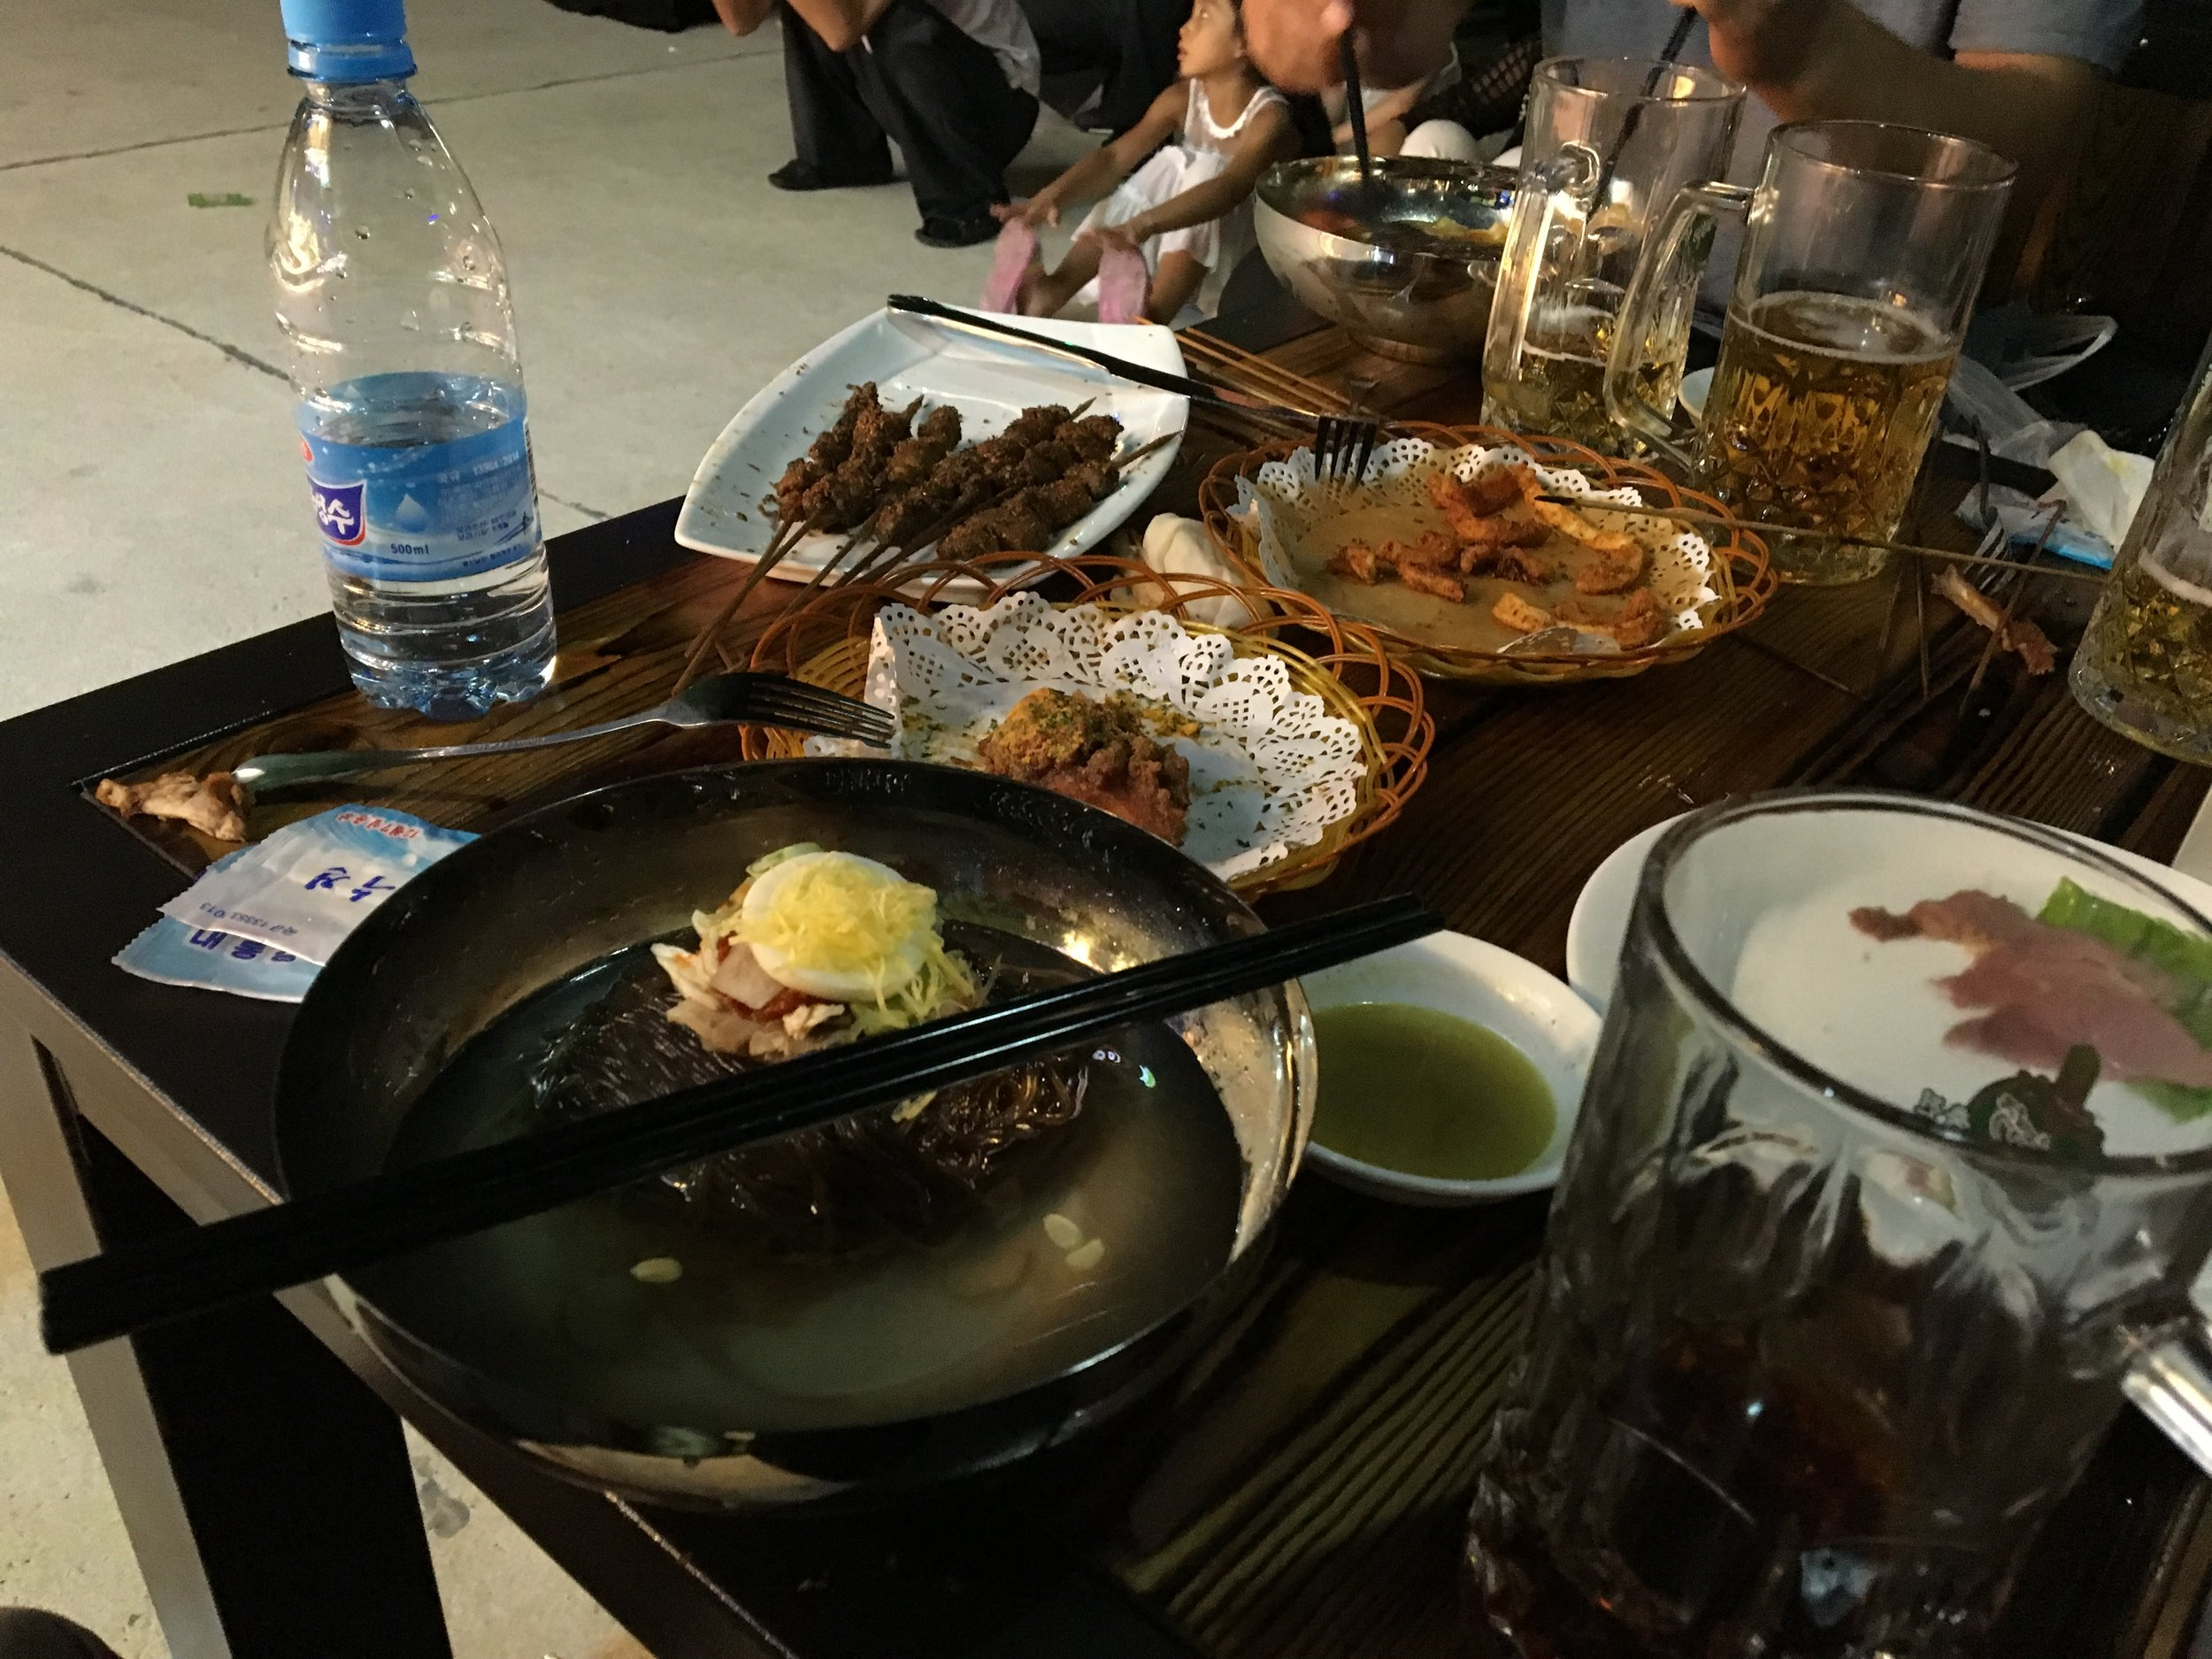 We shared a table with a North Korean family. They sand some lamb skewers, chicken wings, fries, and soba noodles.